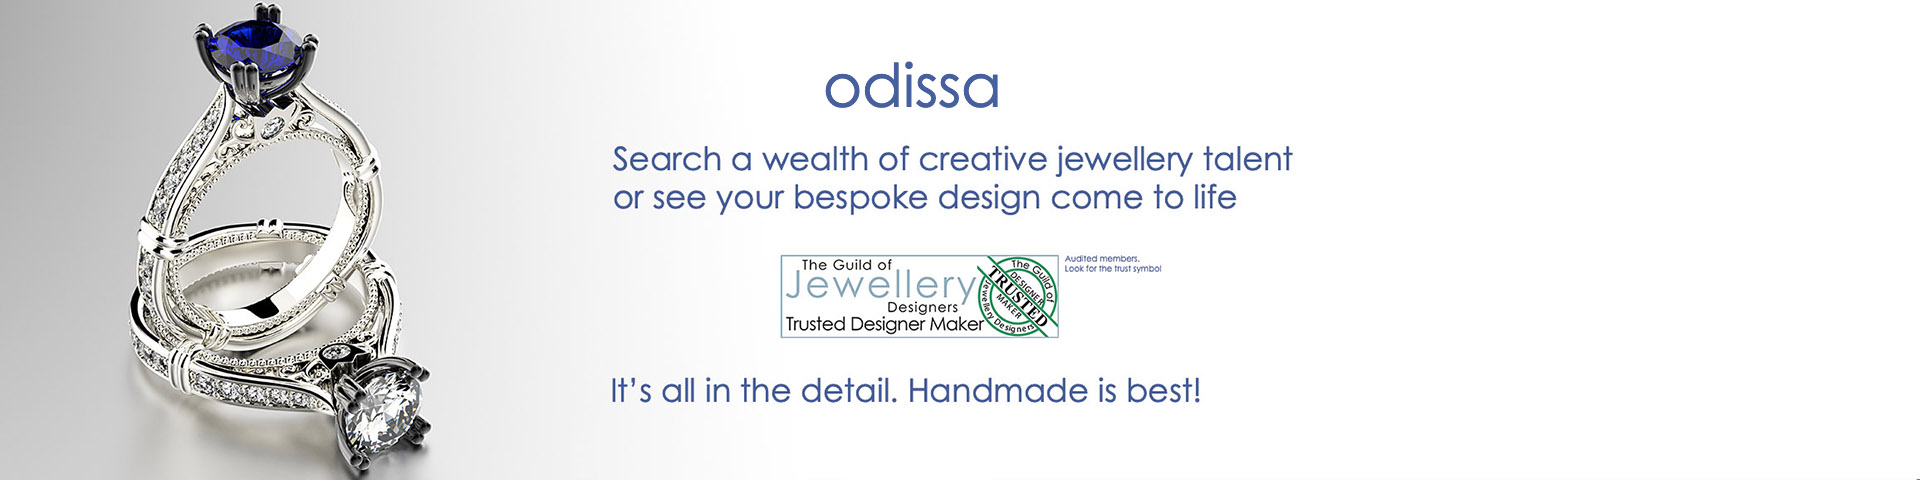 Odissa Jewellery marketplace